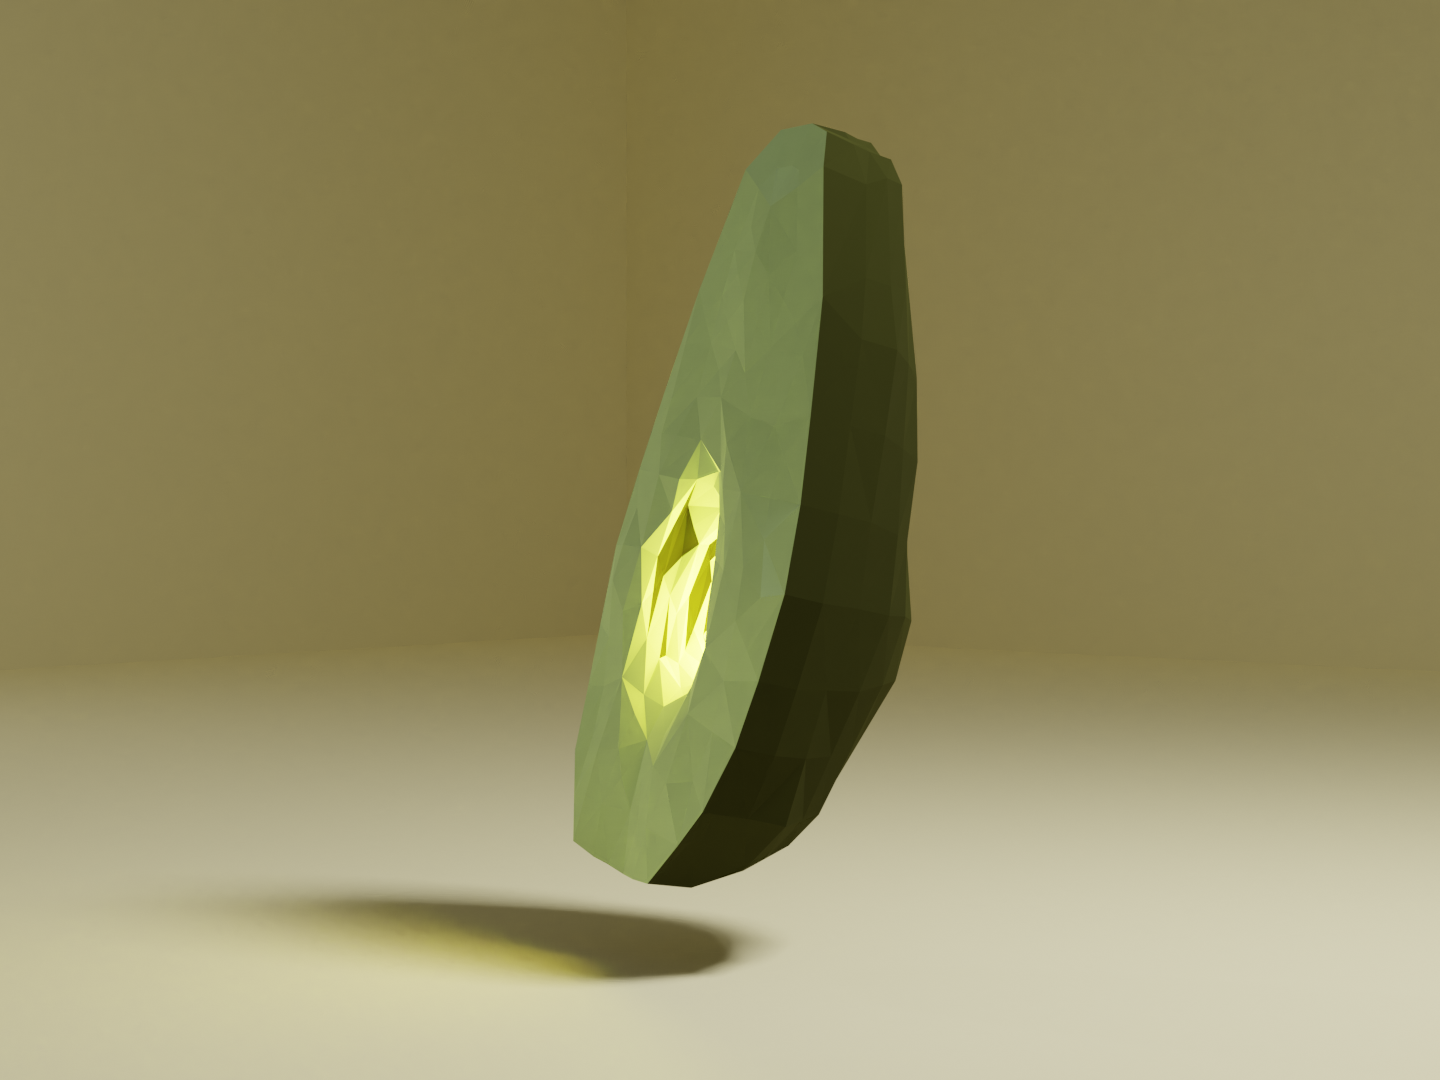 Low Poly Avocado mistery light avocado blender low poly 3d